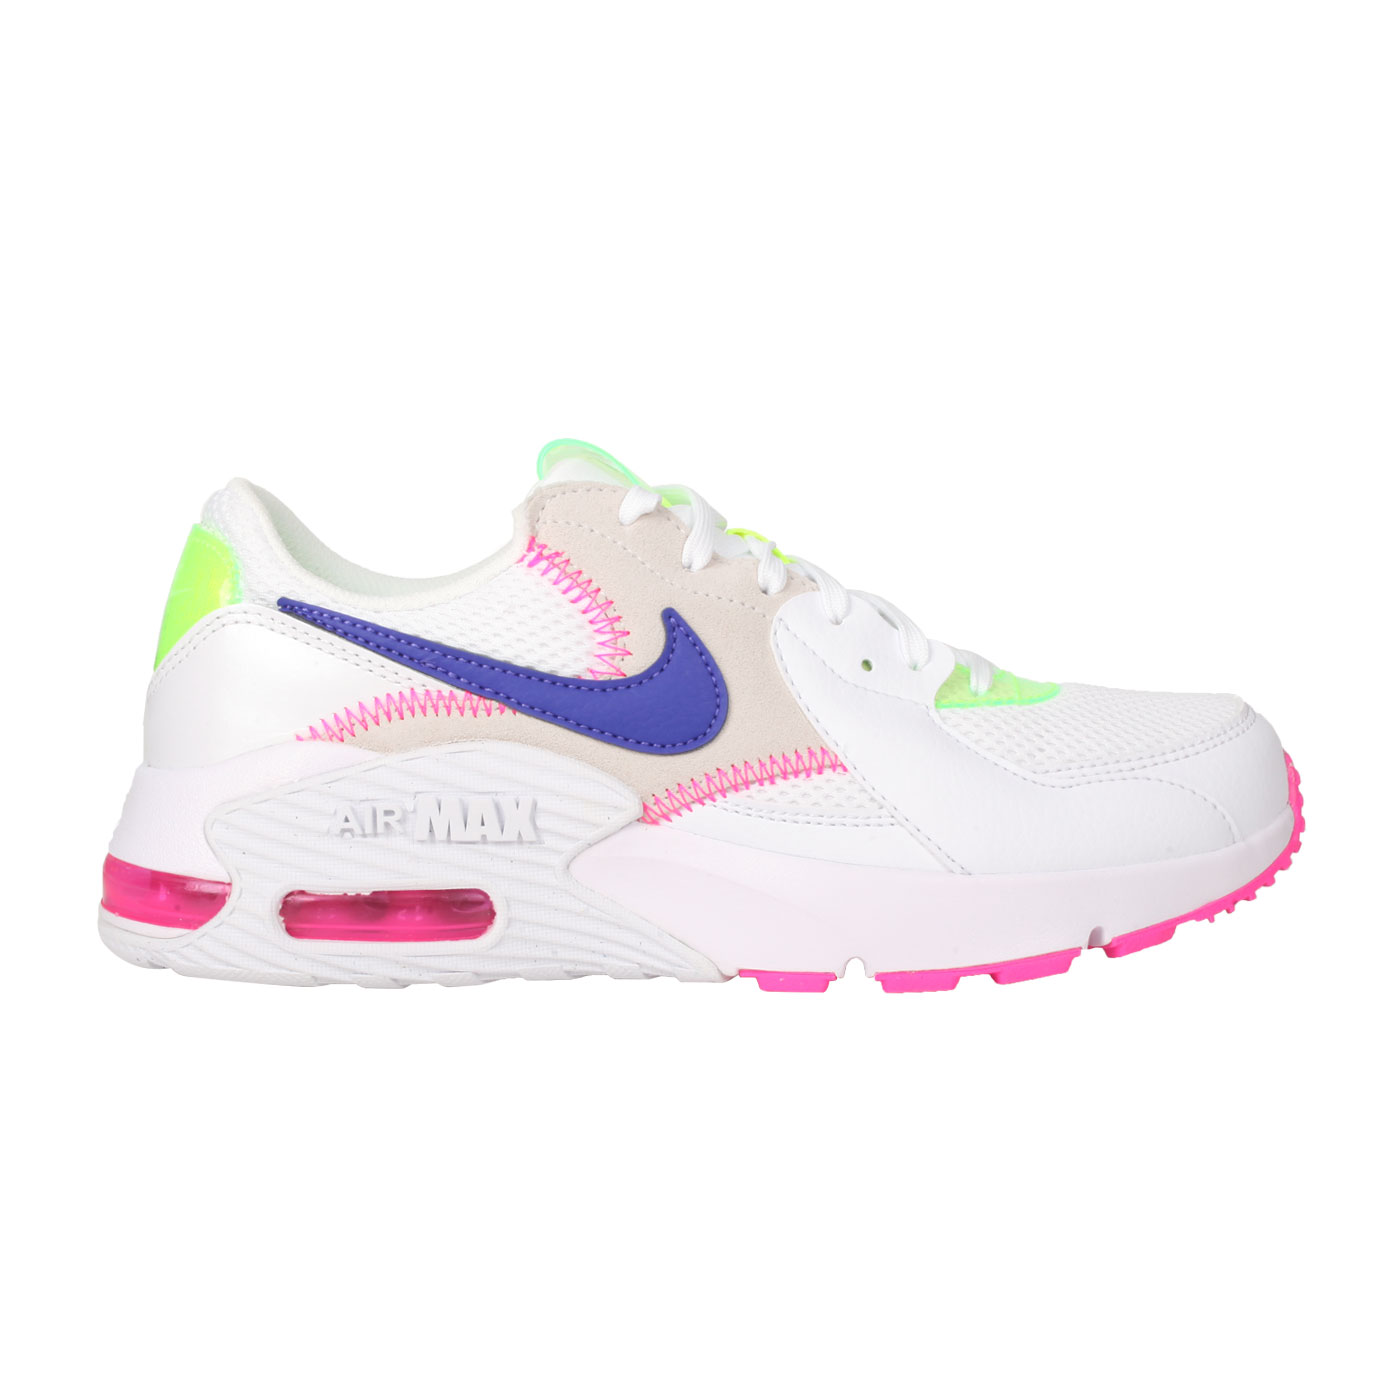 NIKE 女款運動休閒鞋  @WMNS AIR MAX EXCEE AMD@DD2955100